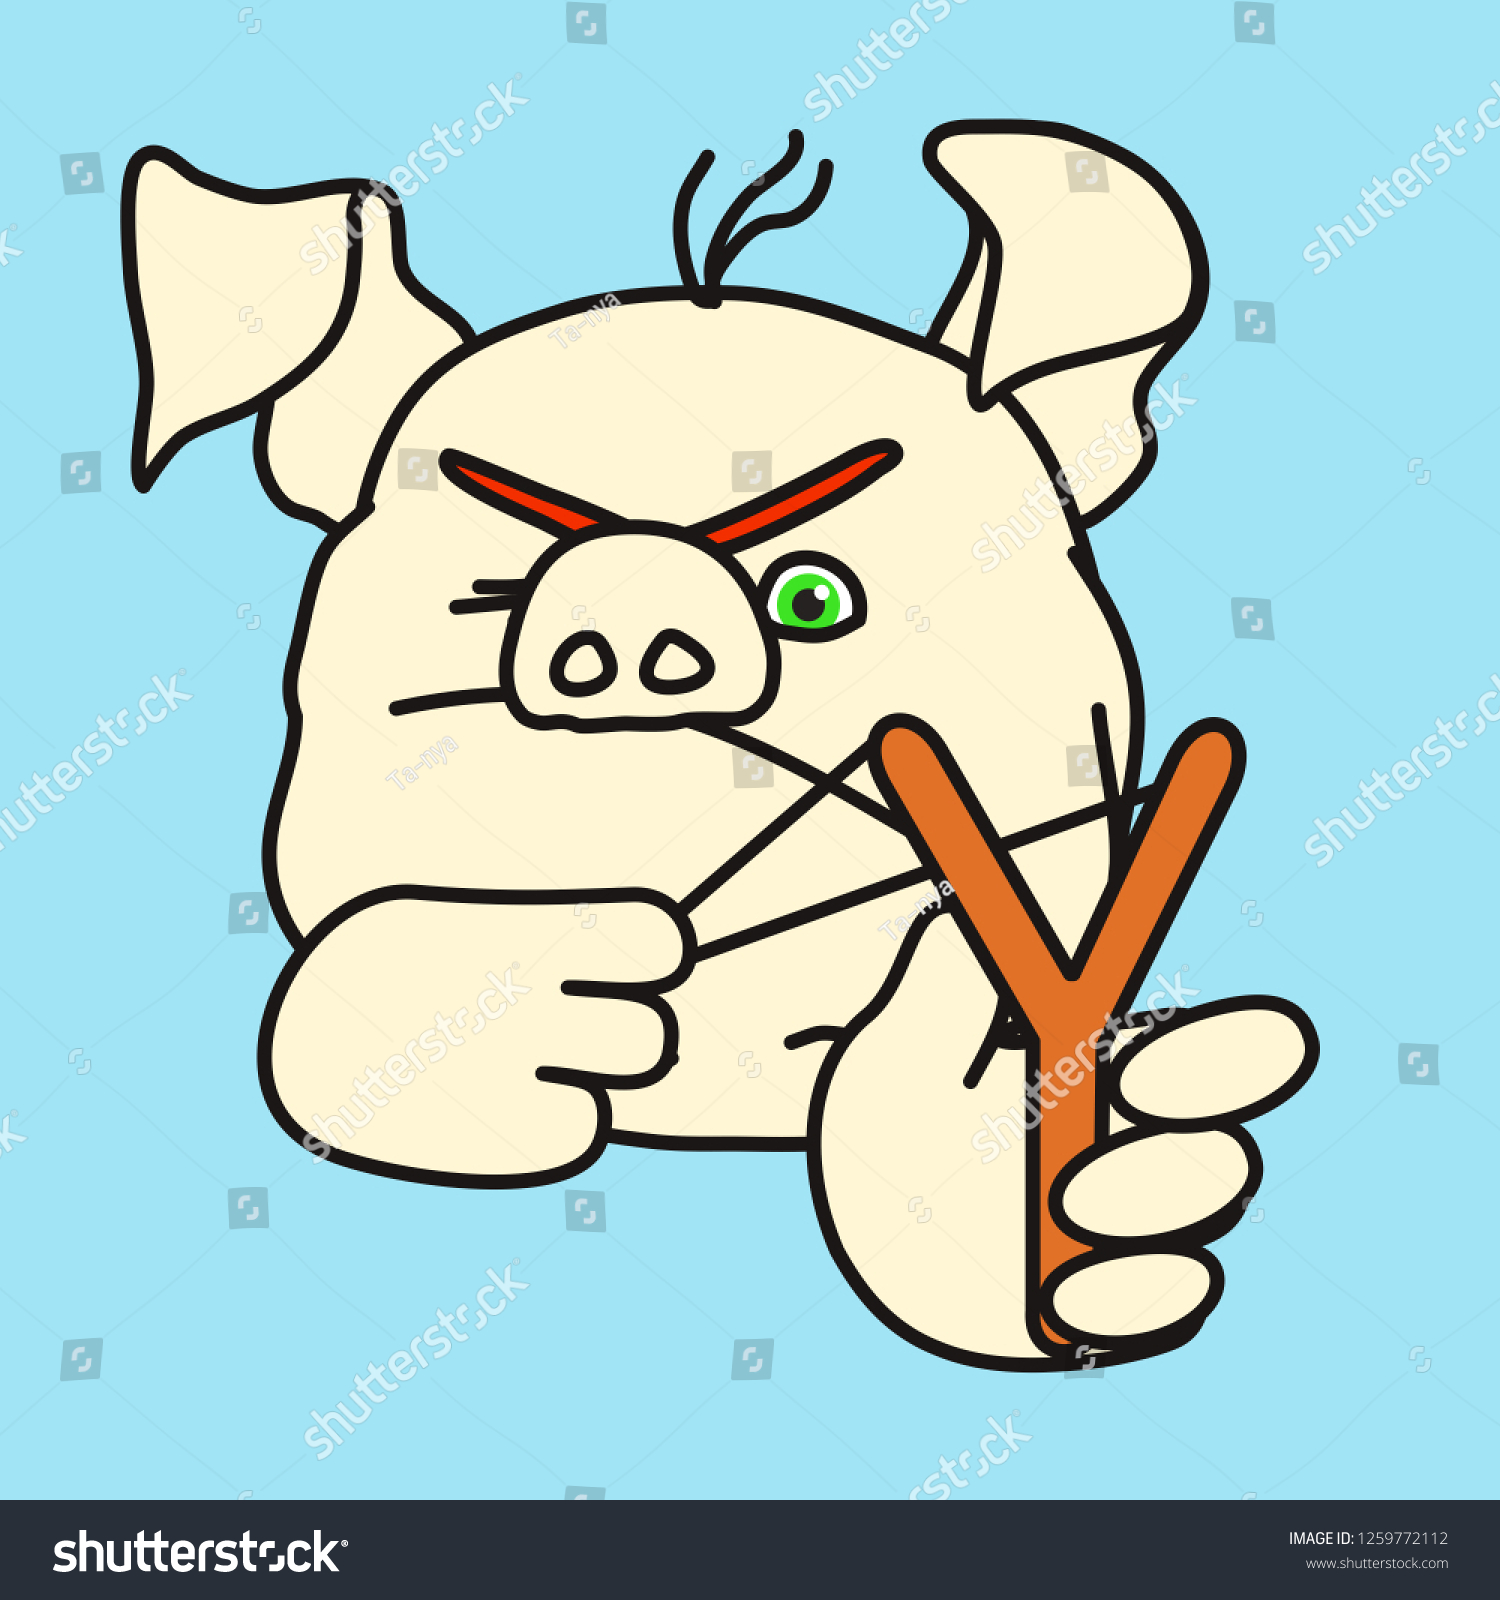 Emoticon Emoji Angry Kid Fat Pig Stock Vector Royalty Free 1259772112